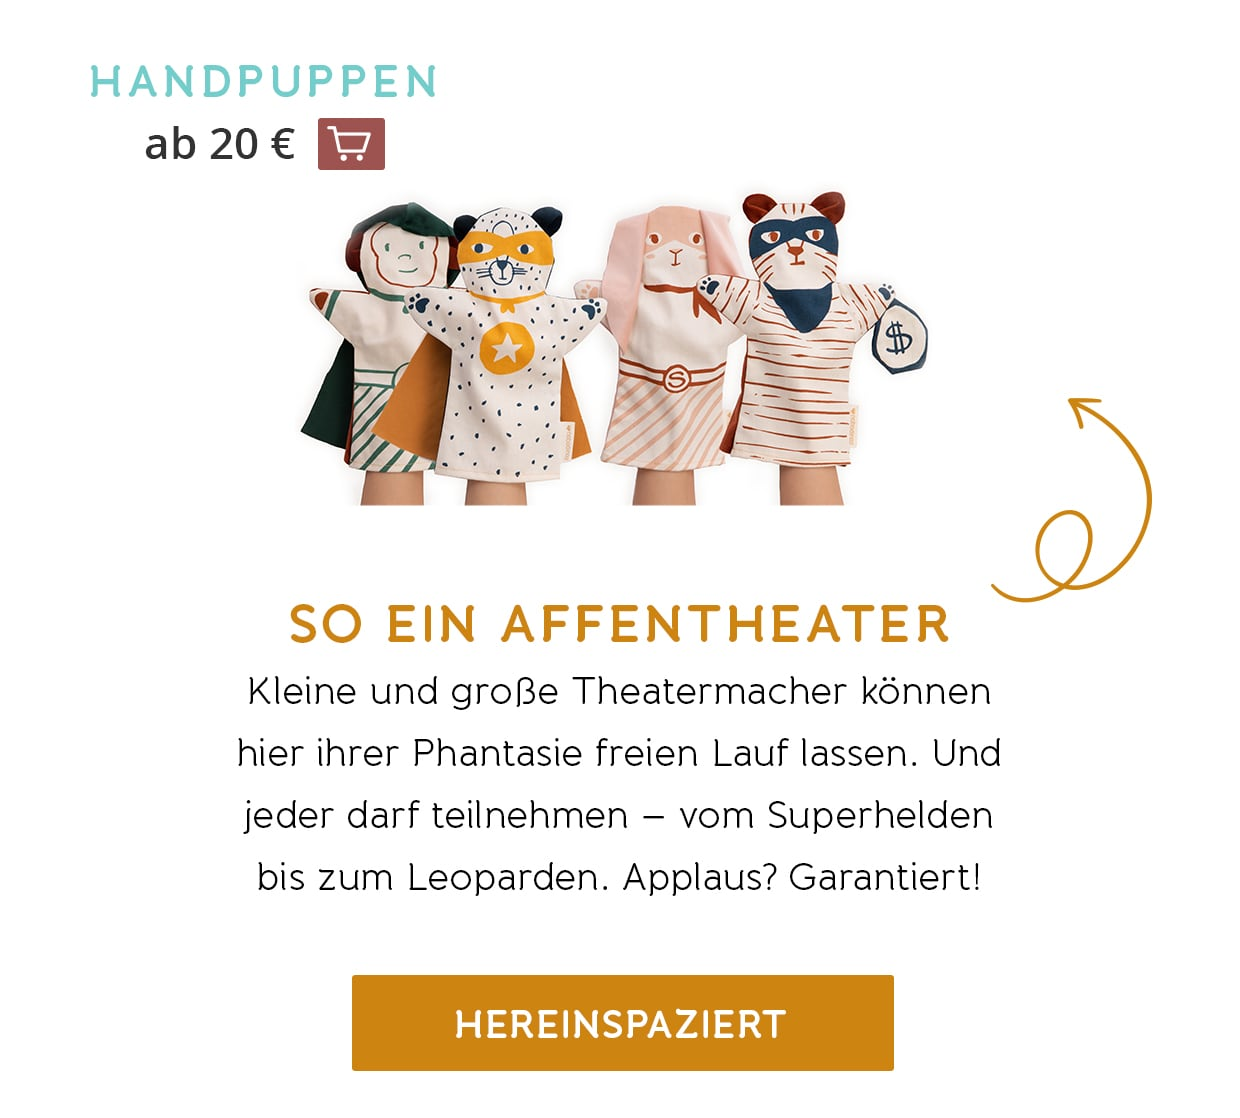 Nobodinoz Superhelden, Kasperle-Theater